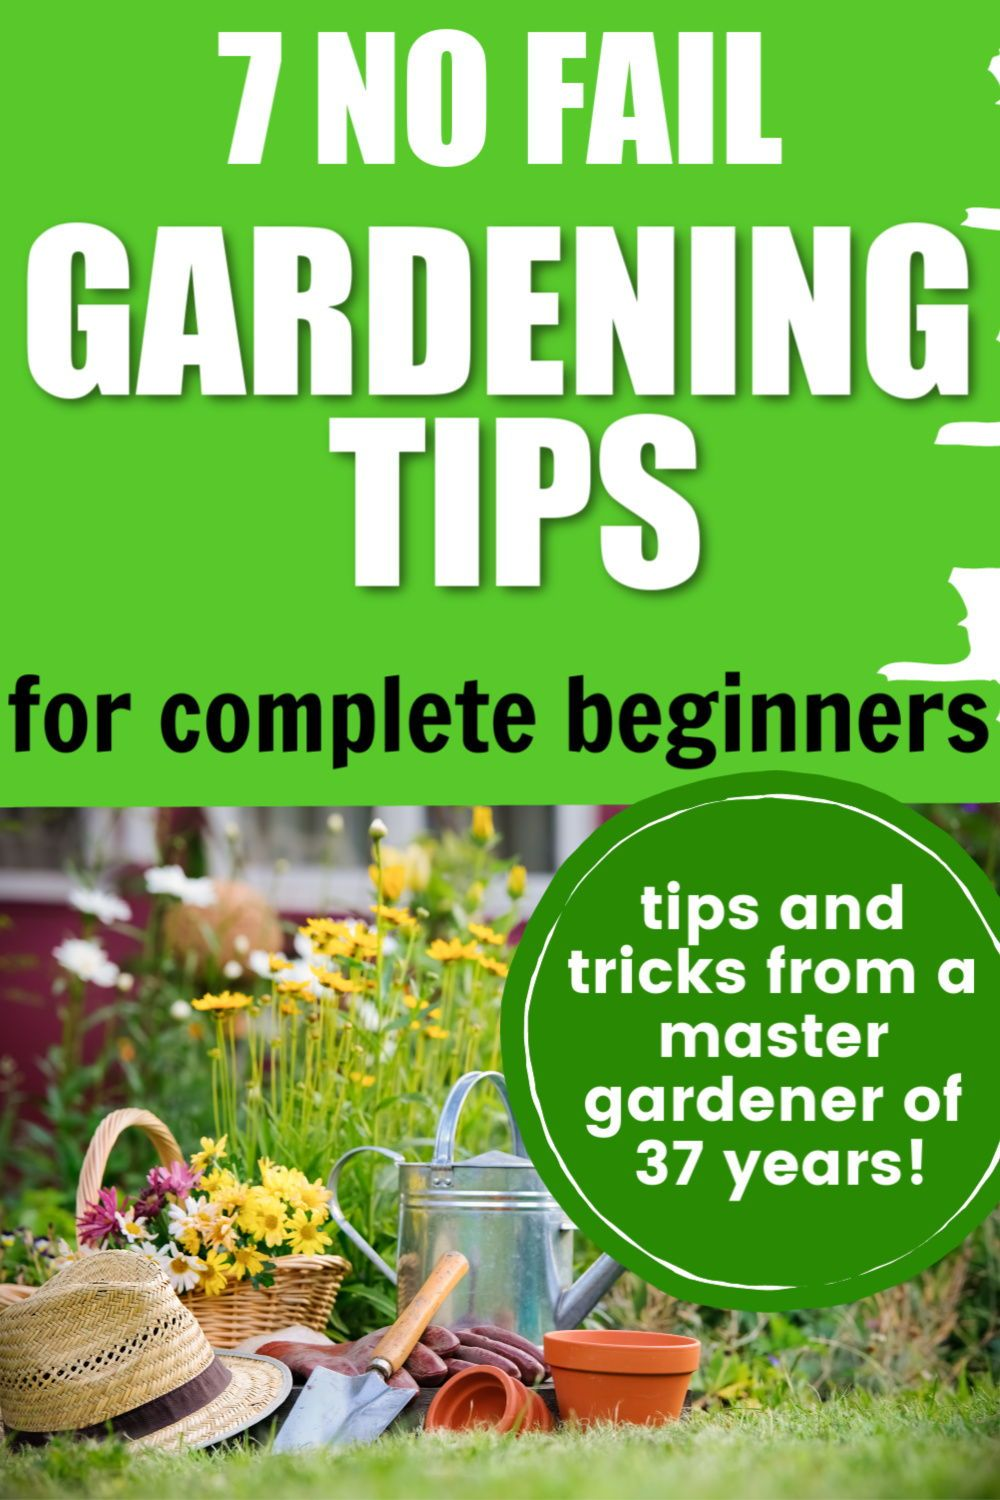 Gardening For Absolute Beginners (top tips for gardening success!) - 2020